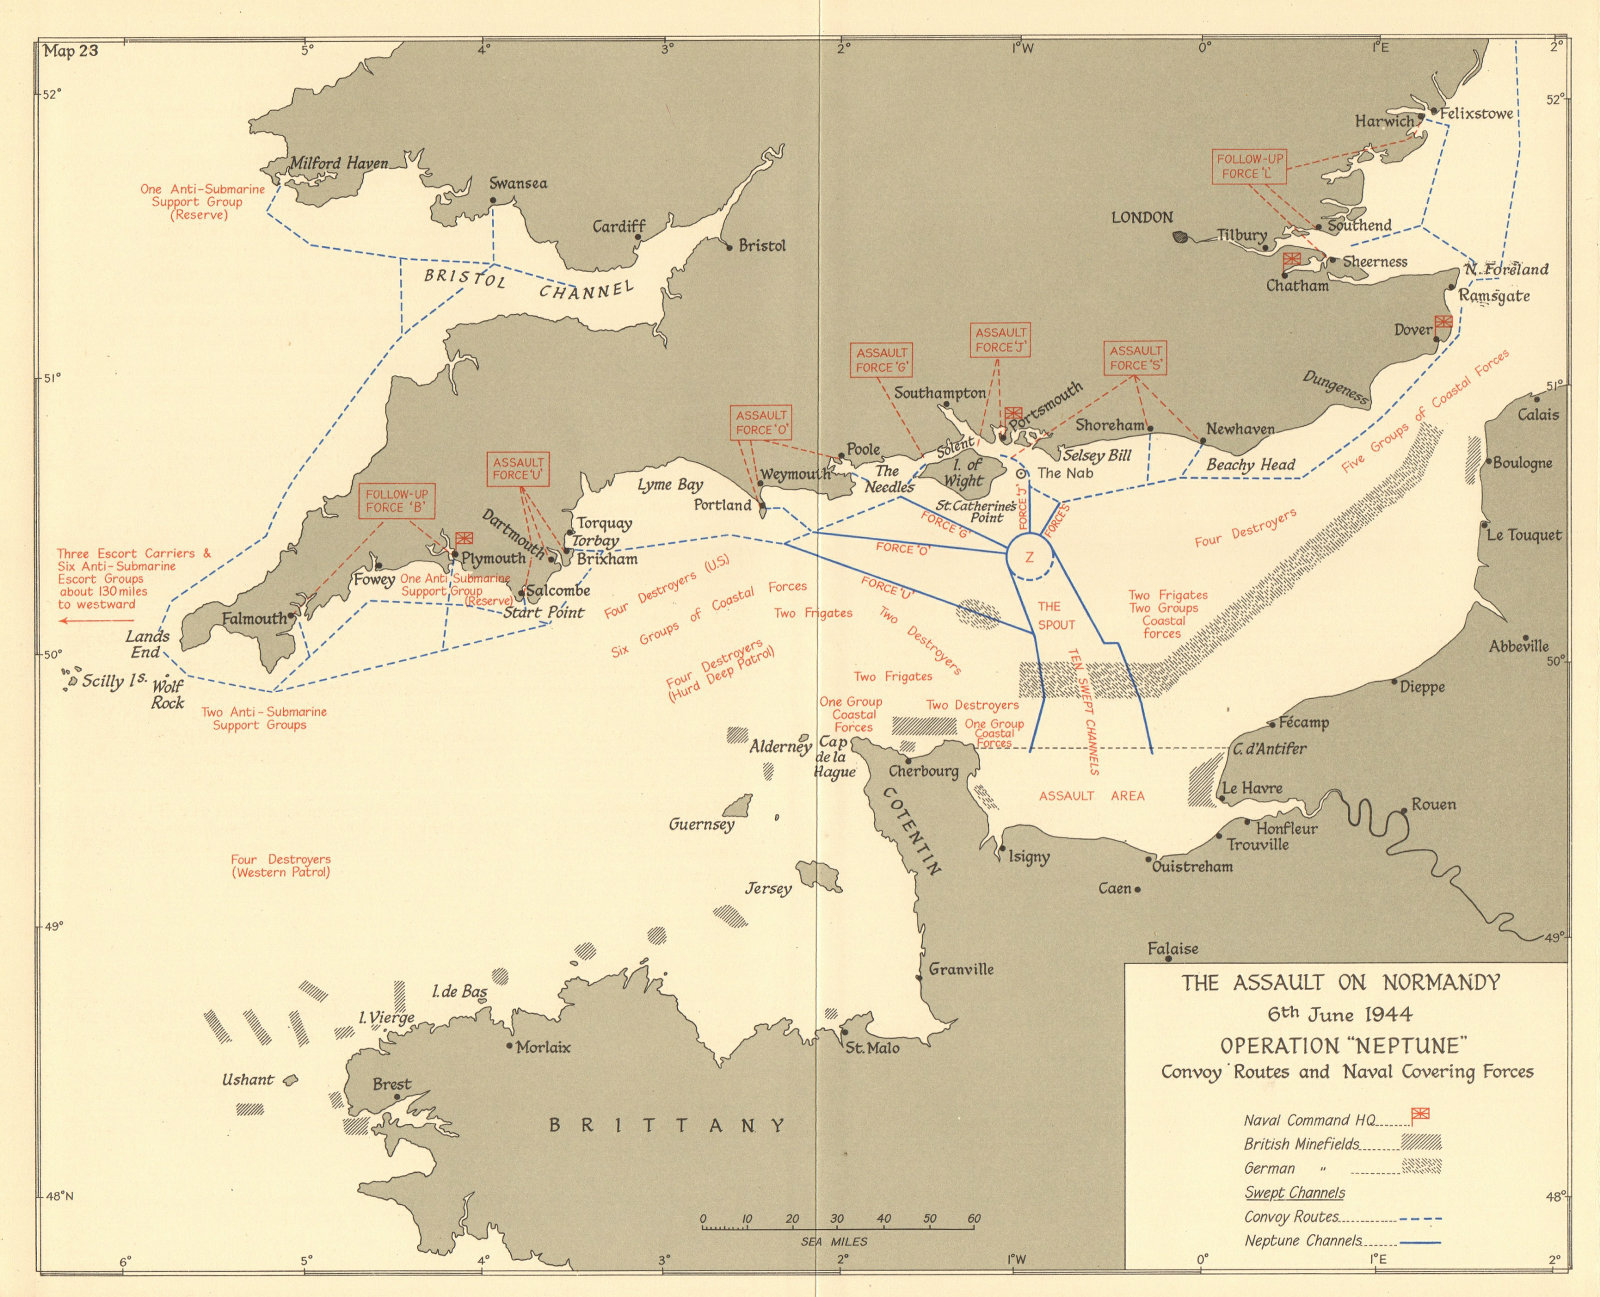 Associate Product D-Day Operation Neptune 6 June 1944 Convoy routes Naval covering forces 1961 map